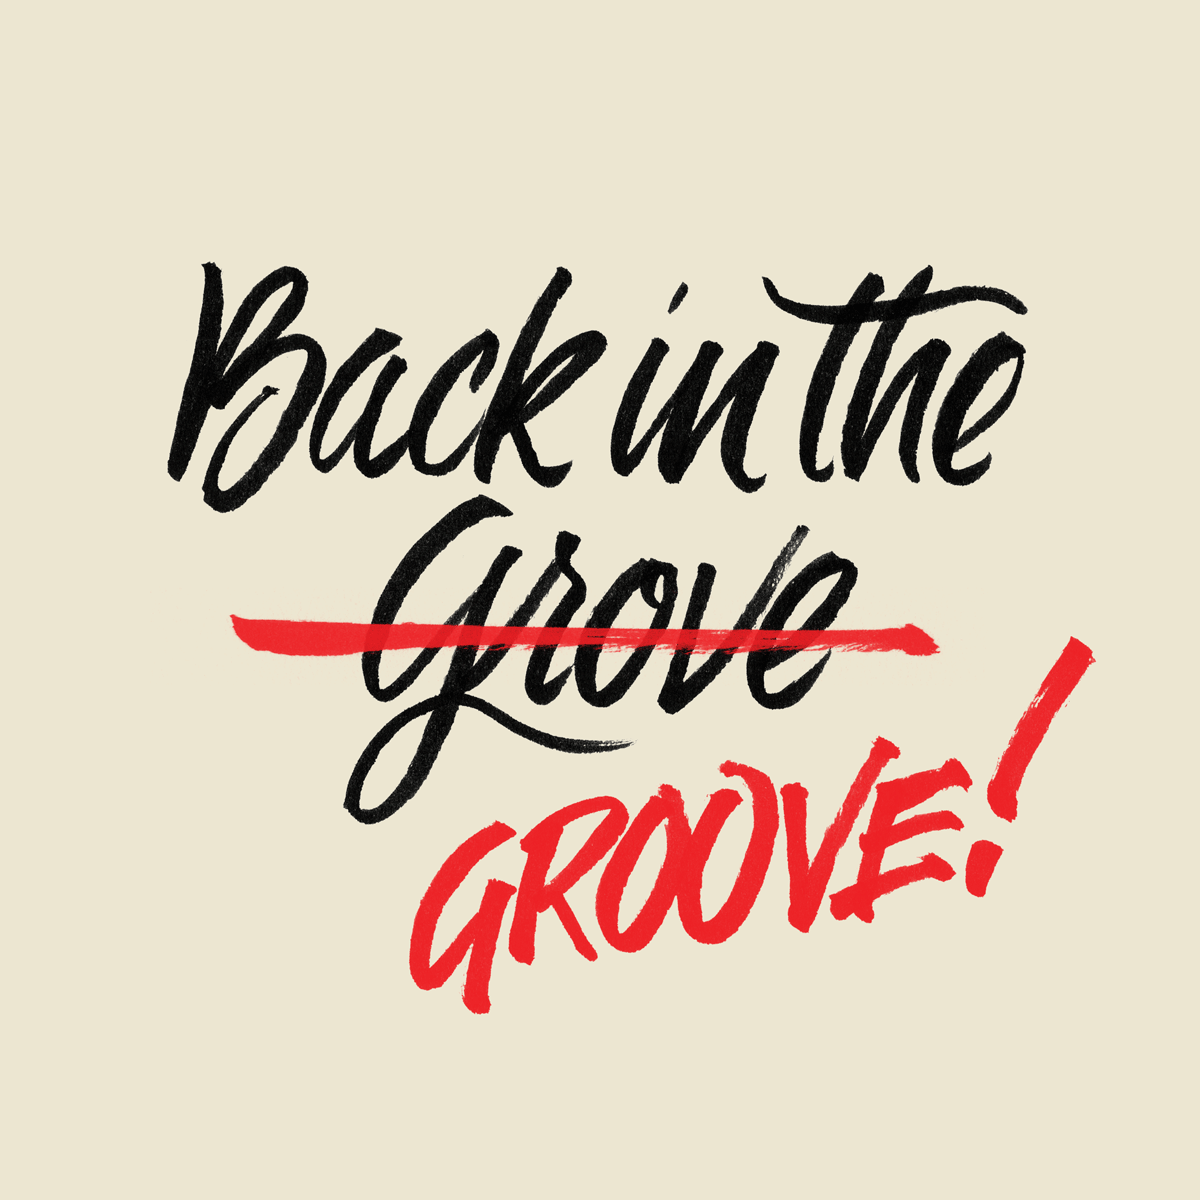 188-Back-in-the-Groove.png